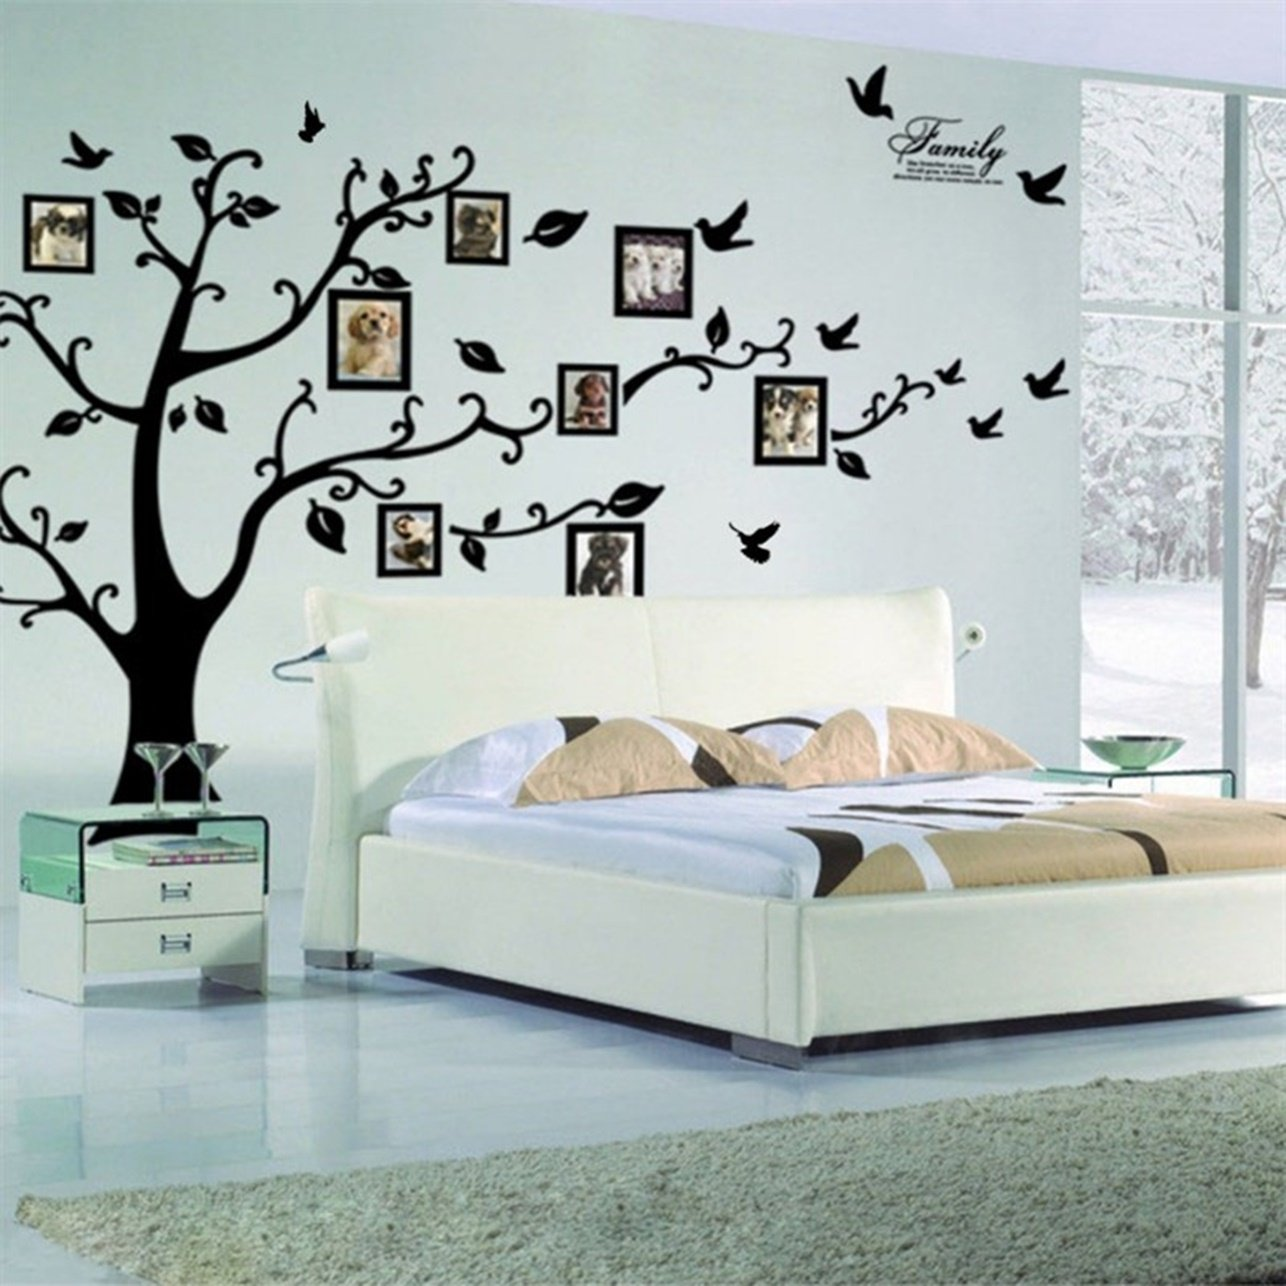 1 Set Family Photo DIY Tree Flying Birds Wall Stickers Arts Posters Decals Living Room Bedroom Boys Nursery Attractive Popular Dream World Moon Star Ocean Sun Flower Vinyl Window Mural Art Decor